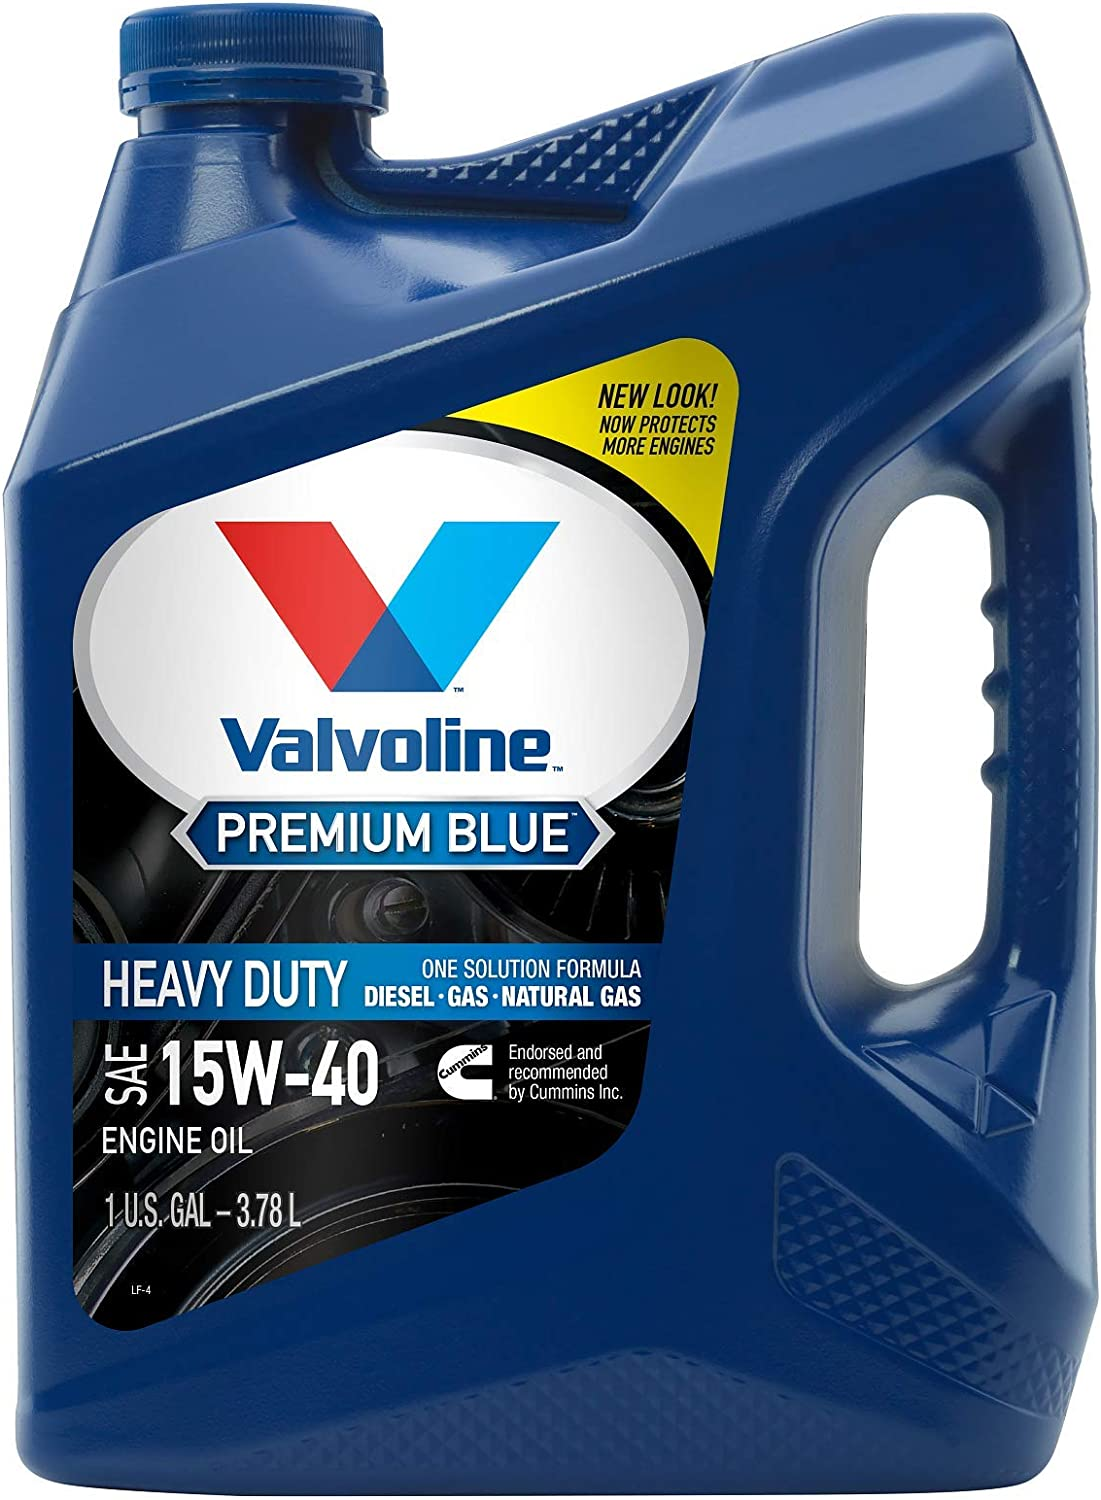 Valvoline Premium Blue SAE 15W-40 Diesel Engine Oil